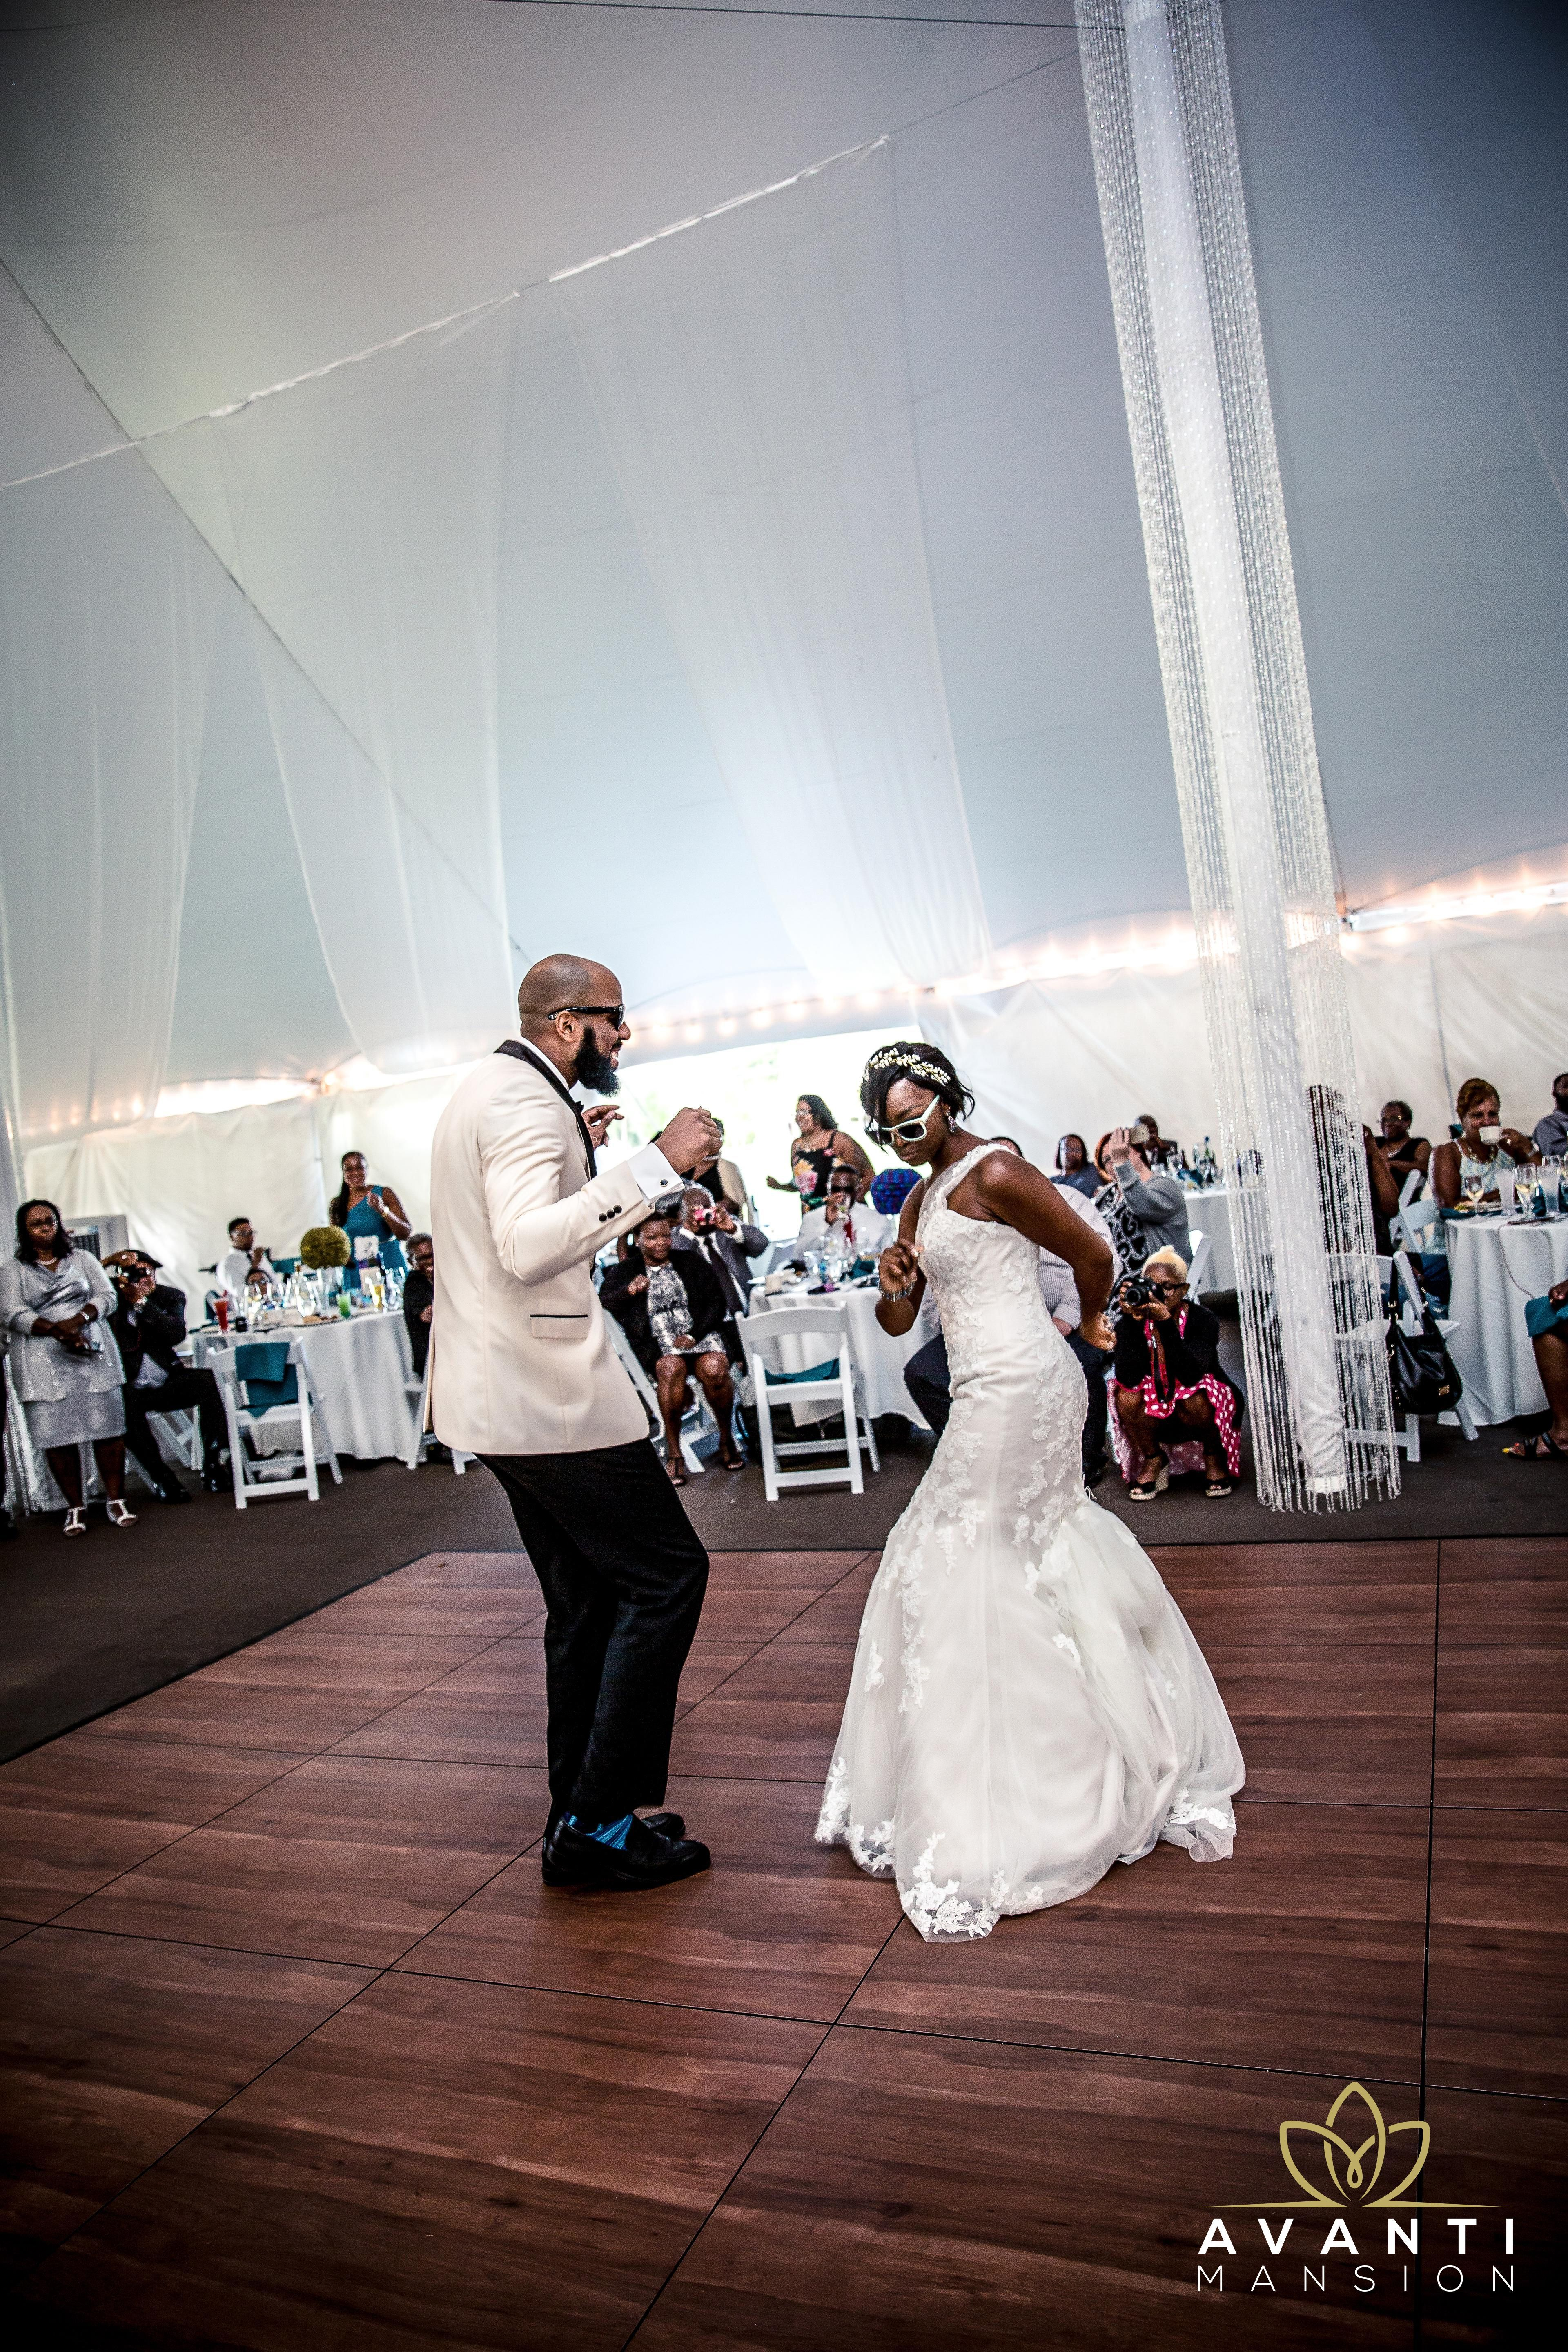 We Love Being Part Of A Fun And Exciting Wedding Party Especially When It S Got The Newly Weds Closing Down Dance Floor